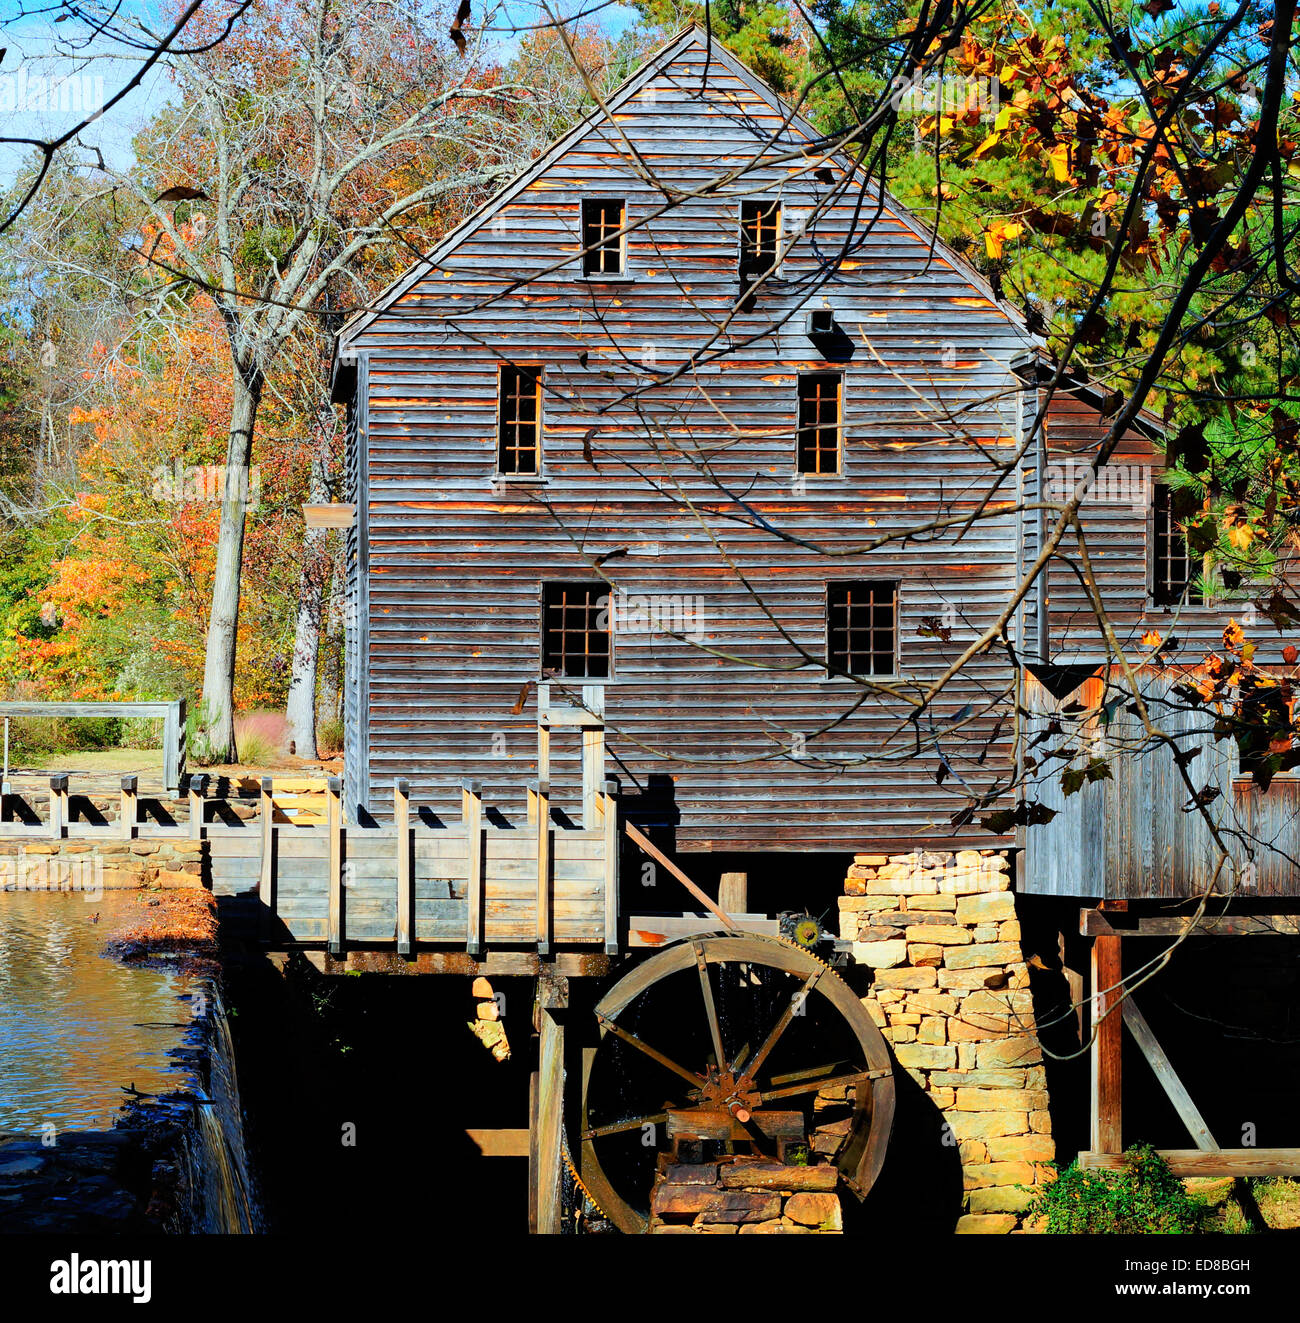 Southern mill - Stock Image